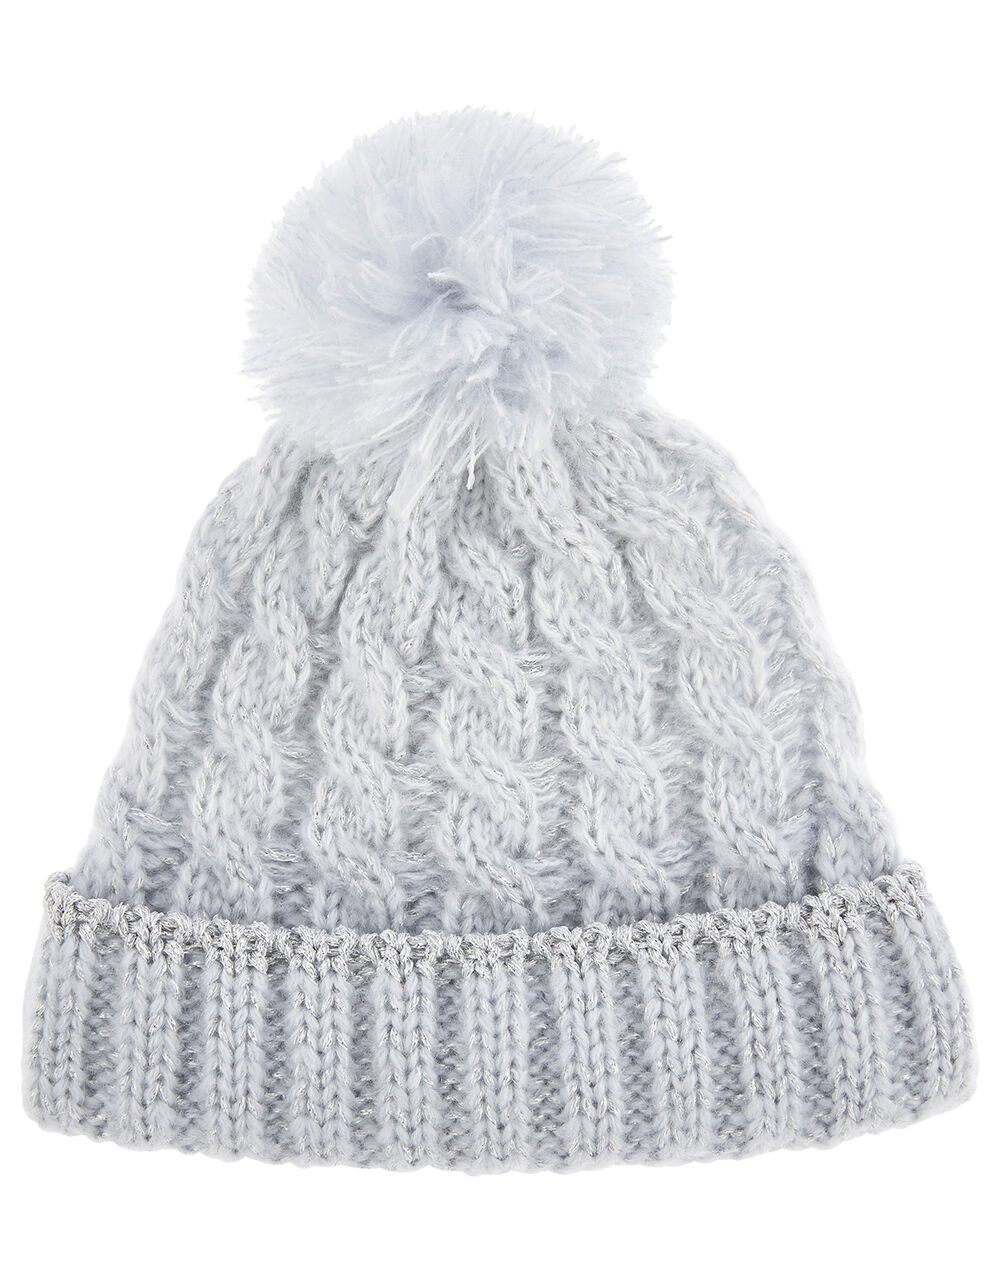 Baby Evie Shimmer Cable Knit Hat, Blue (BLUE), large